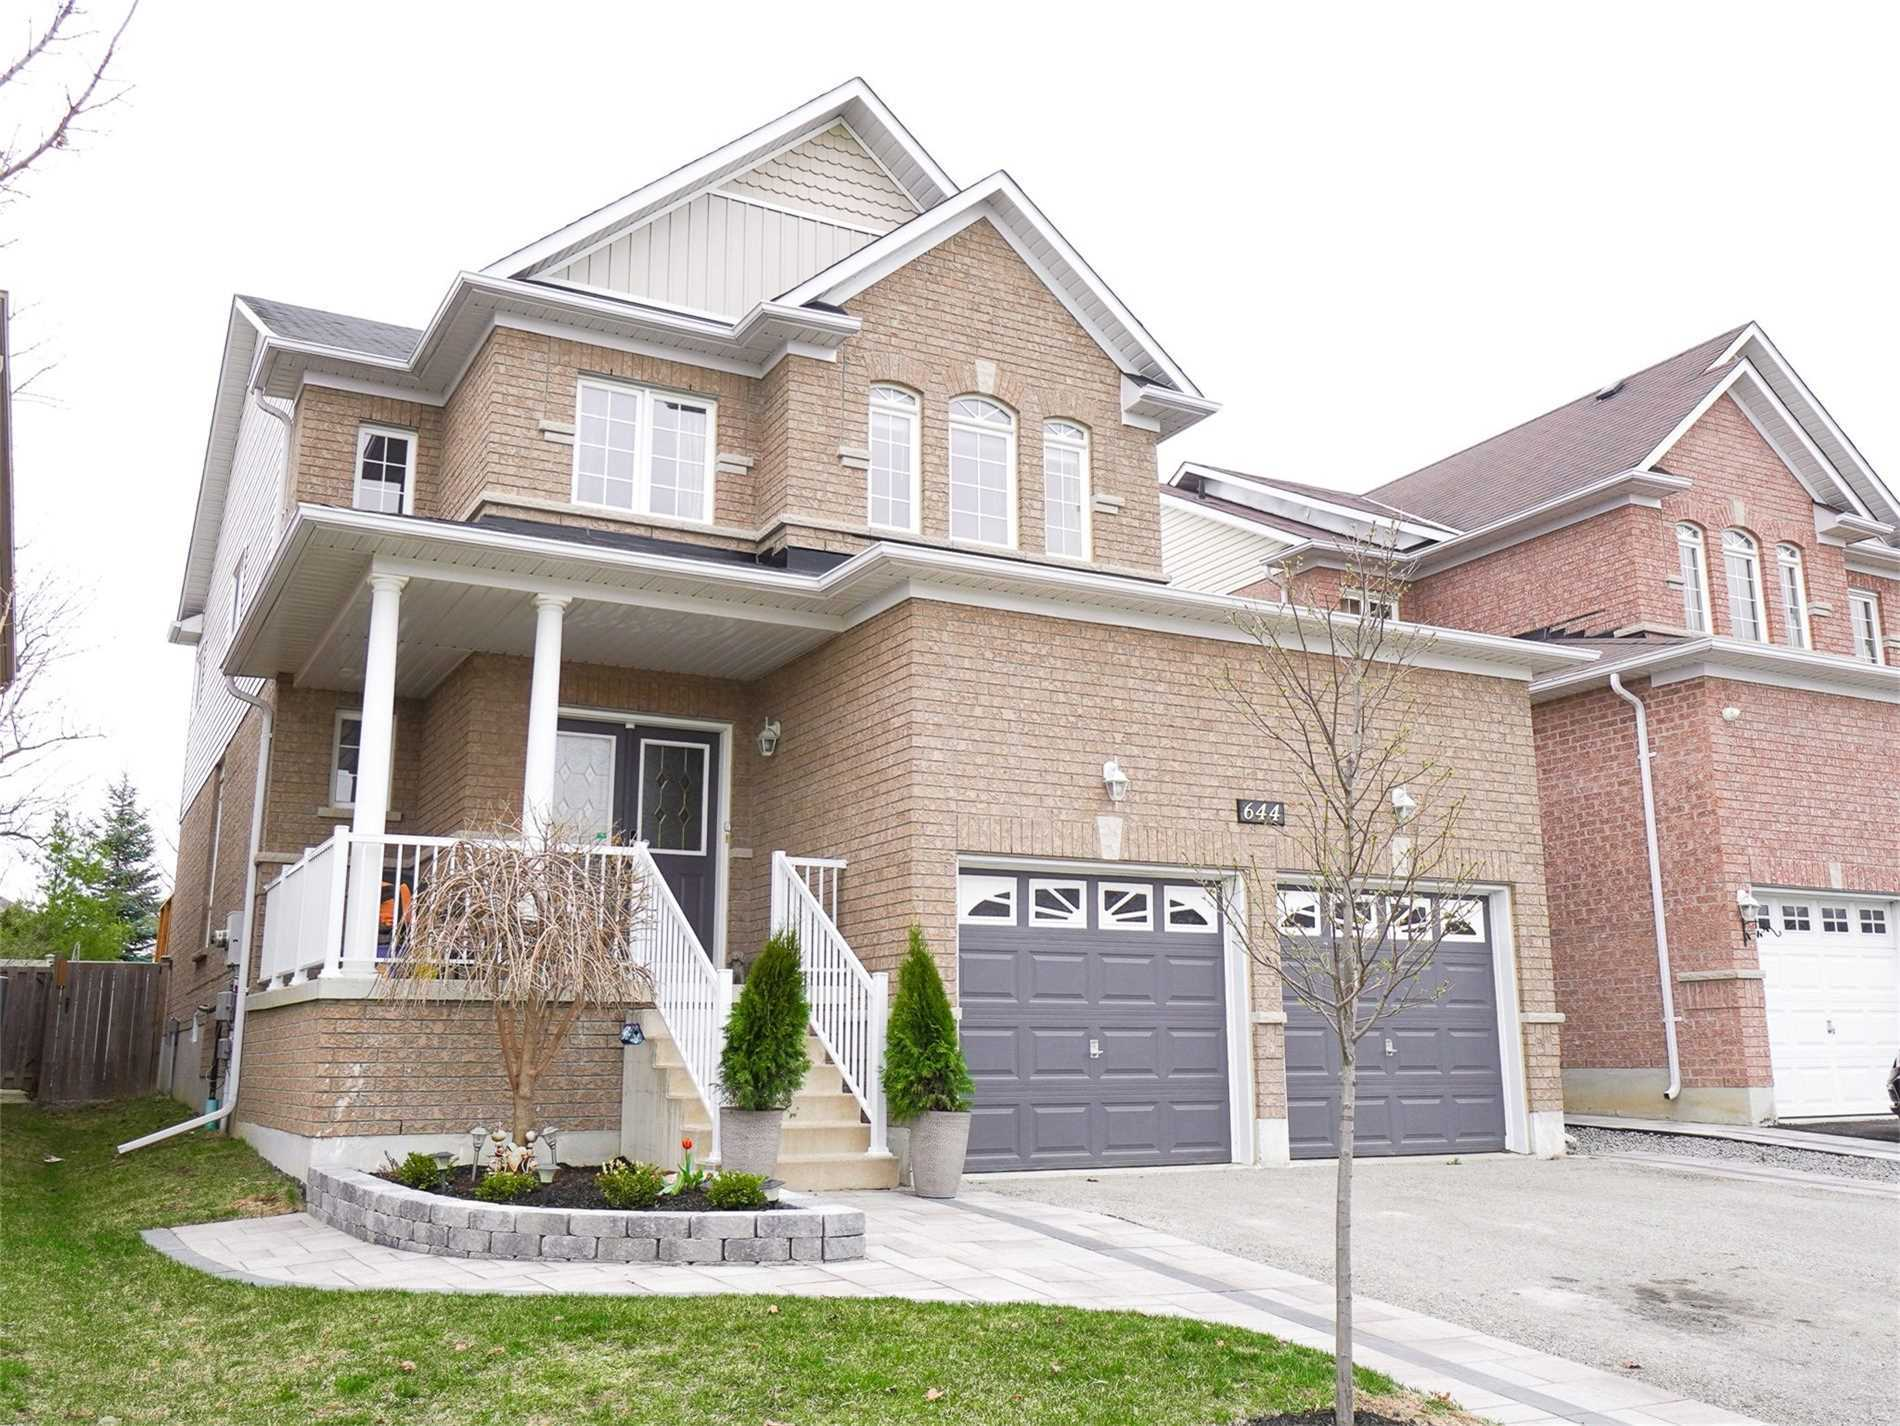 644 Tully Cres, Peterborough